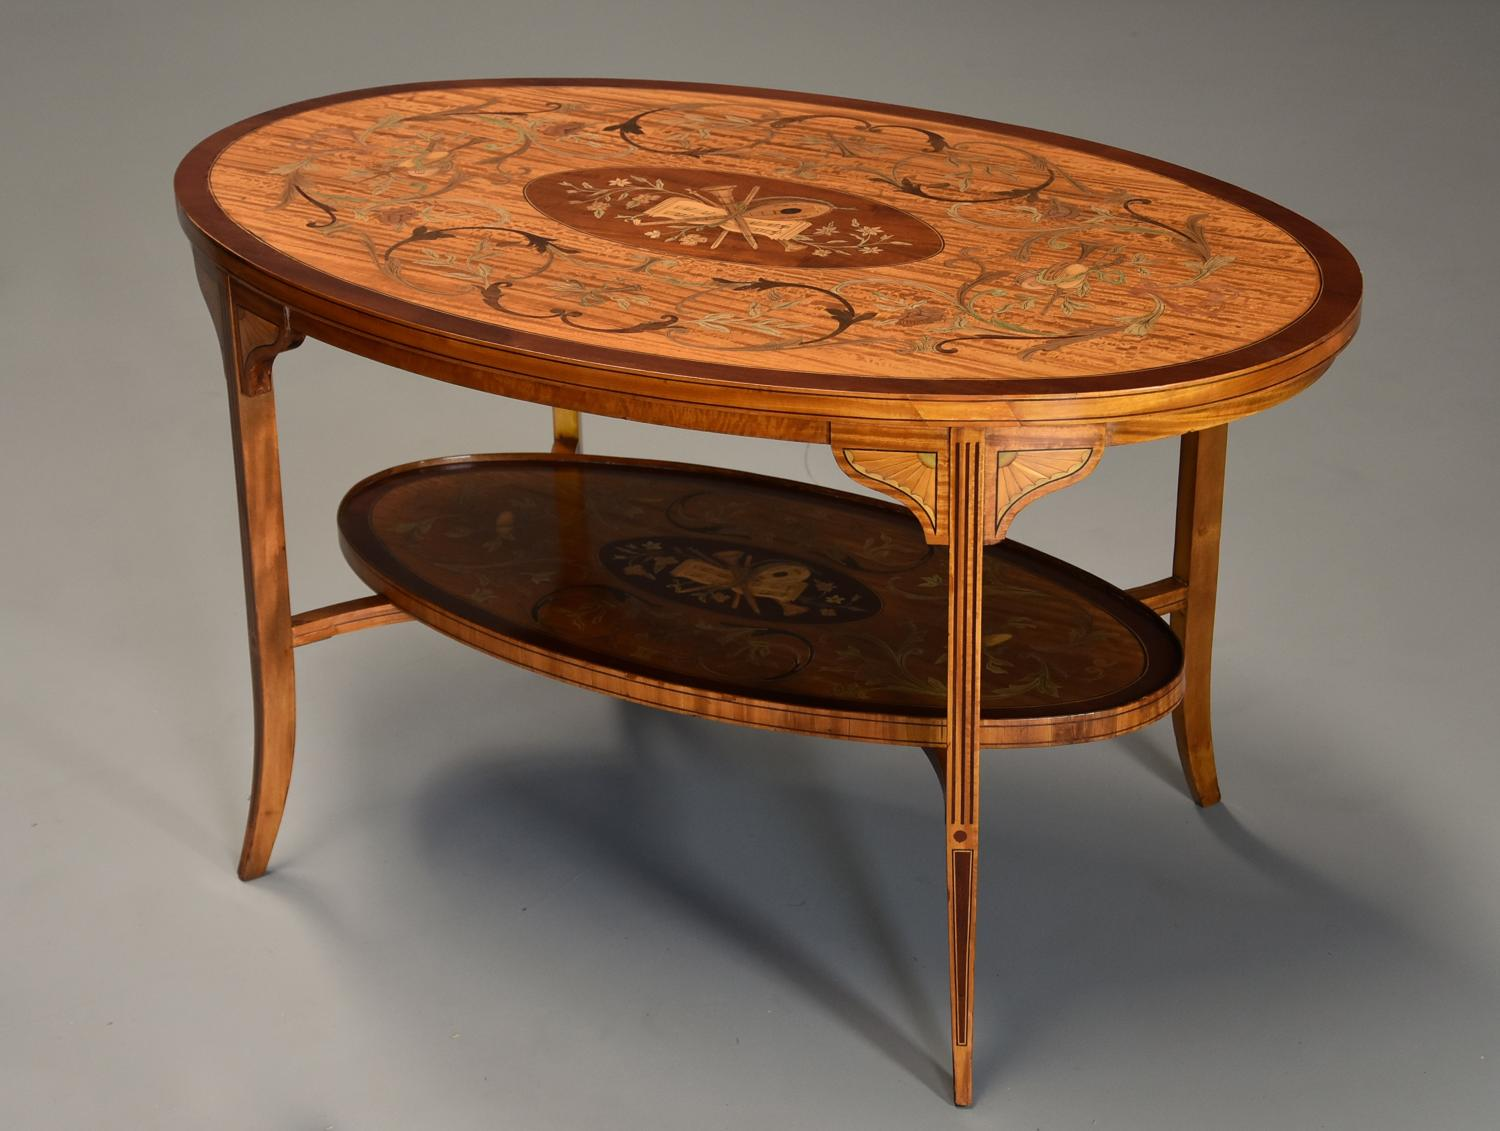 Superbly fine quality Edwardian inlaid satinwood oval coffee table